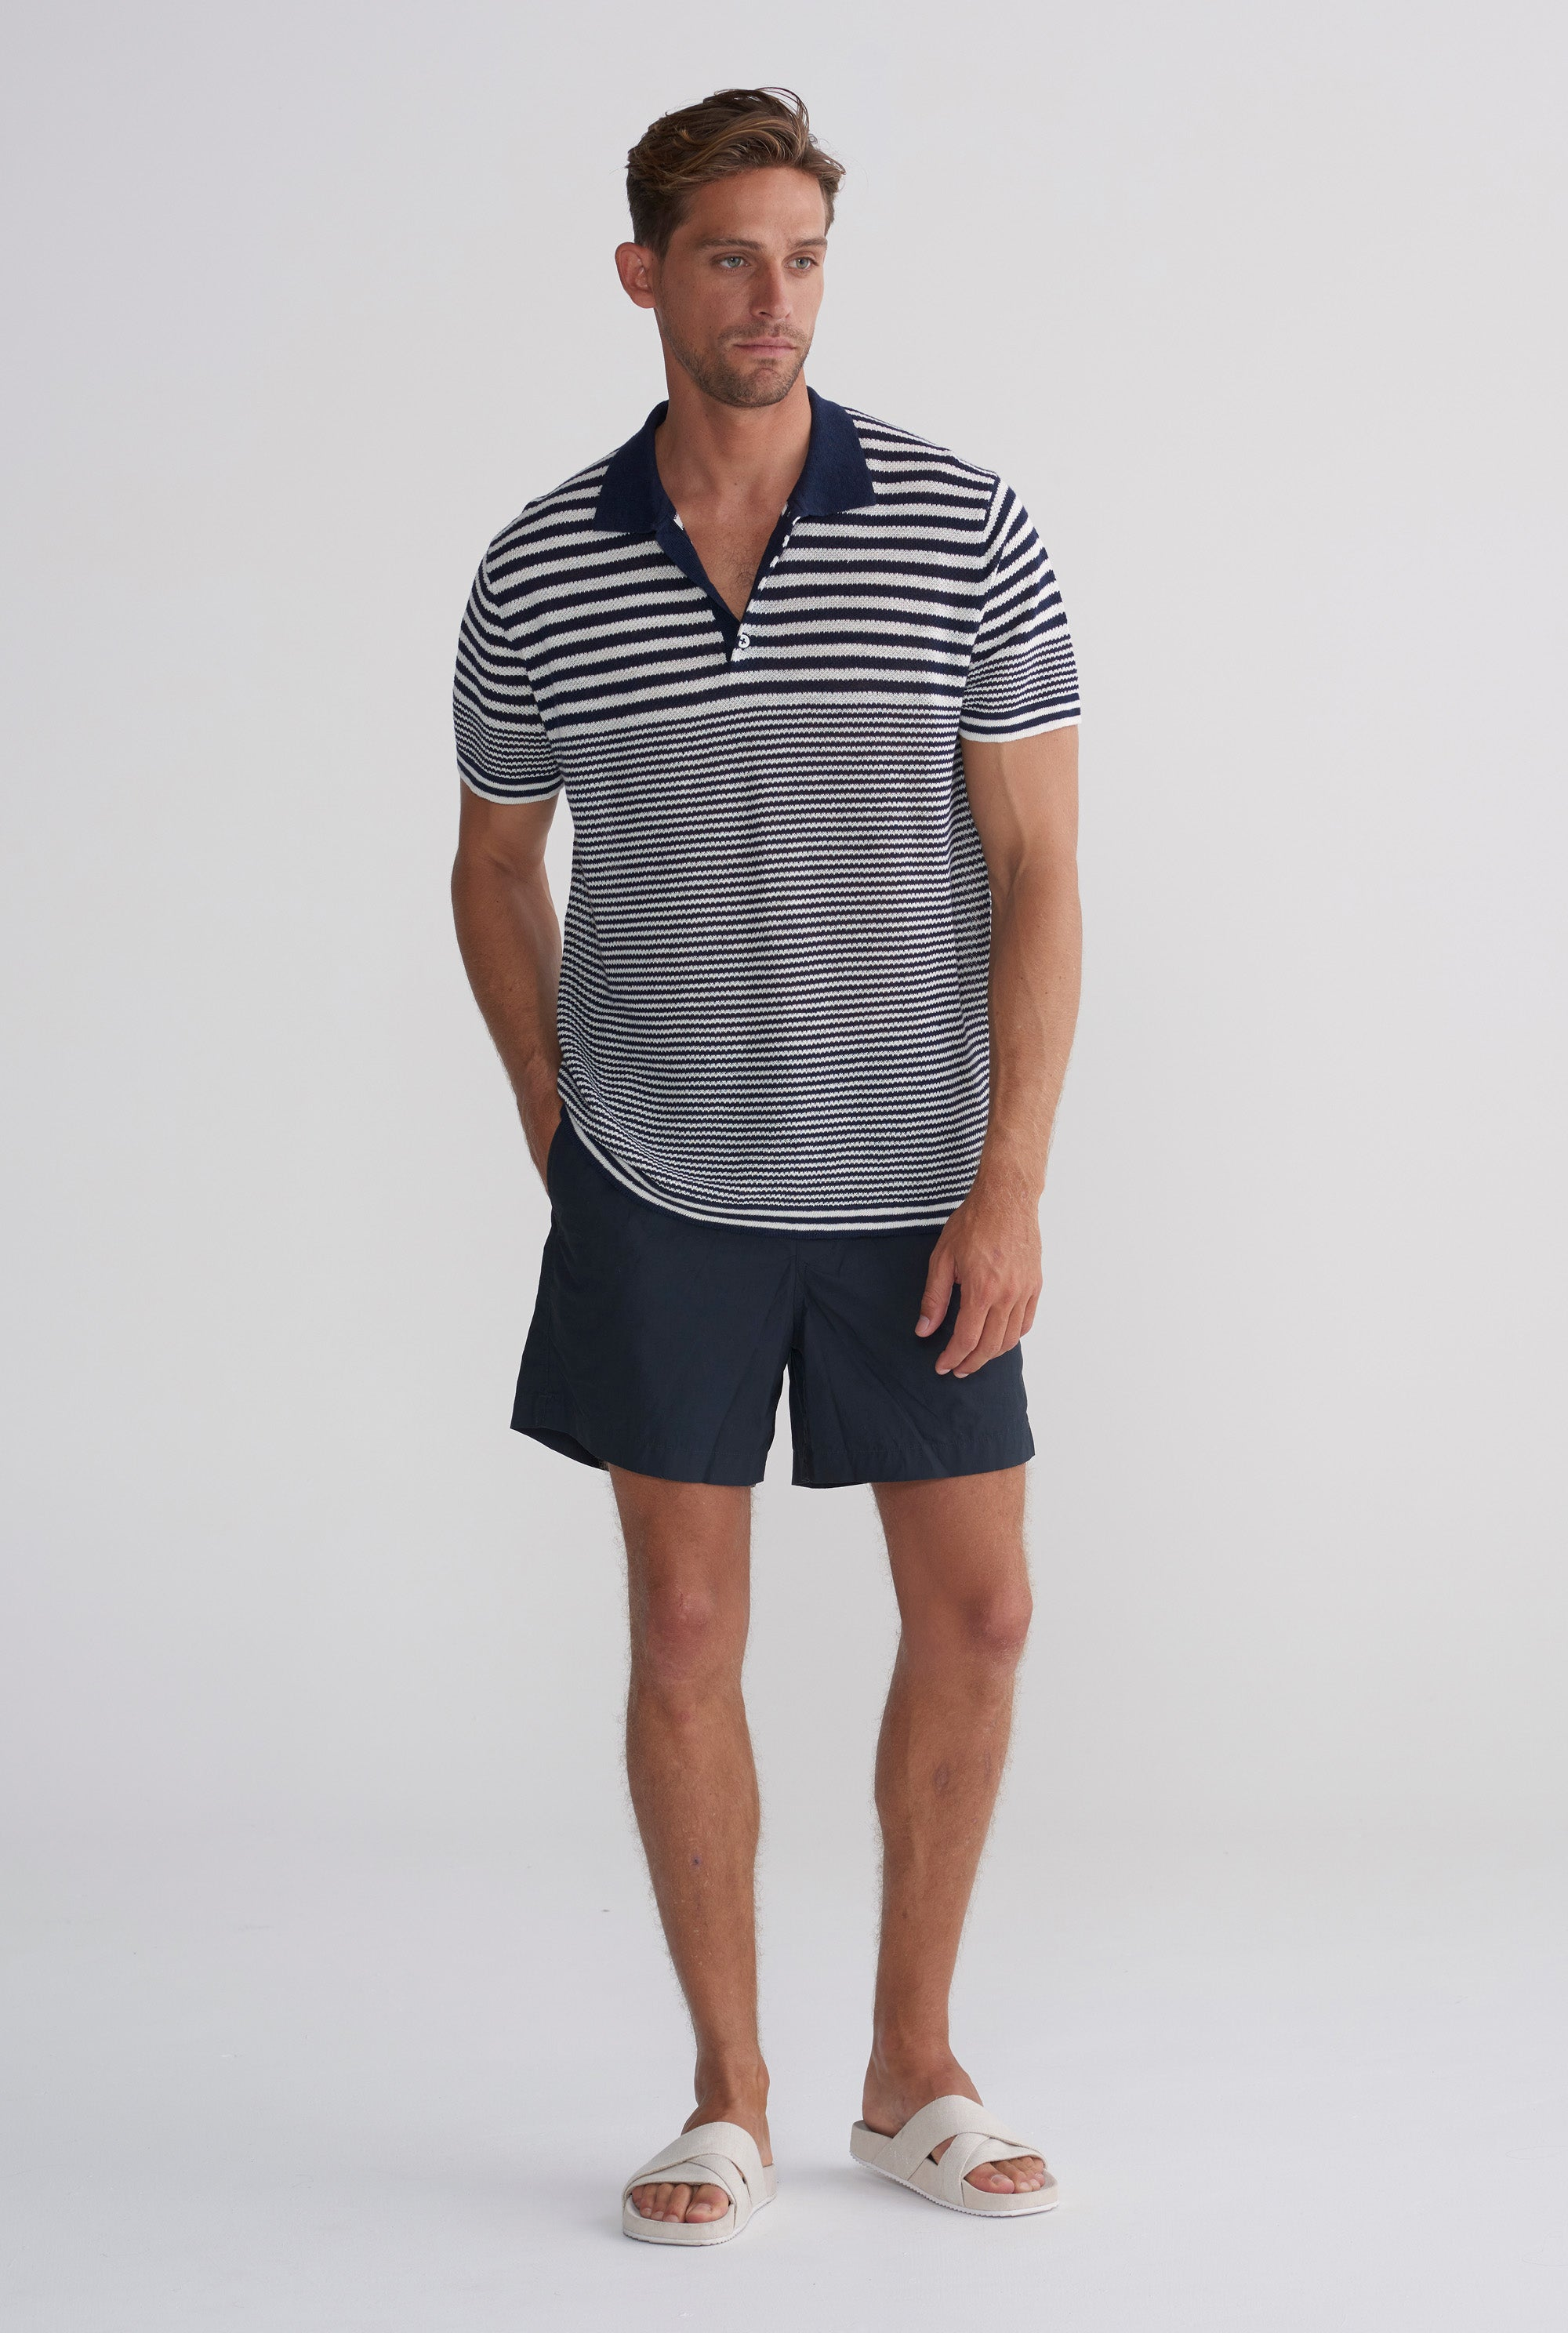 Knitted Polo - Navy/Ivory Stripe